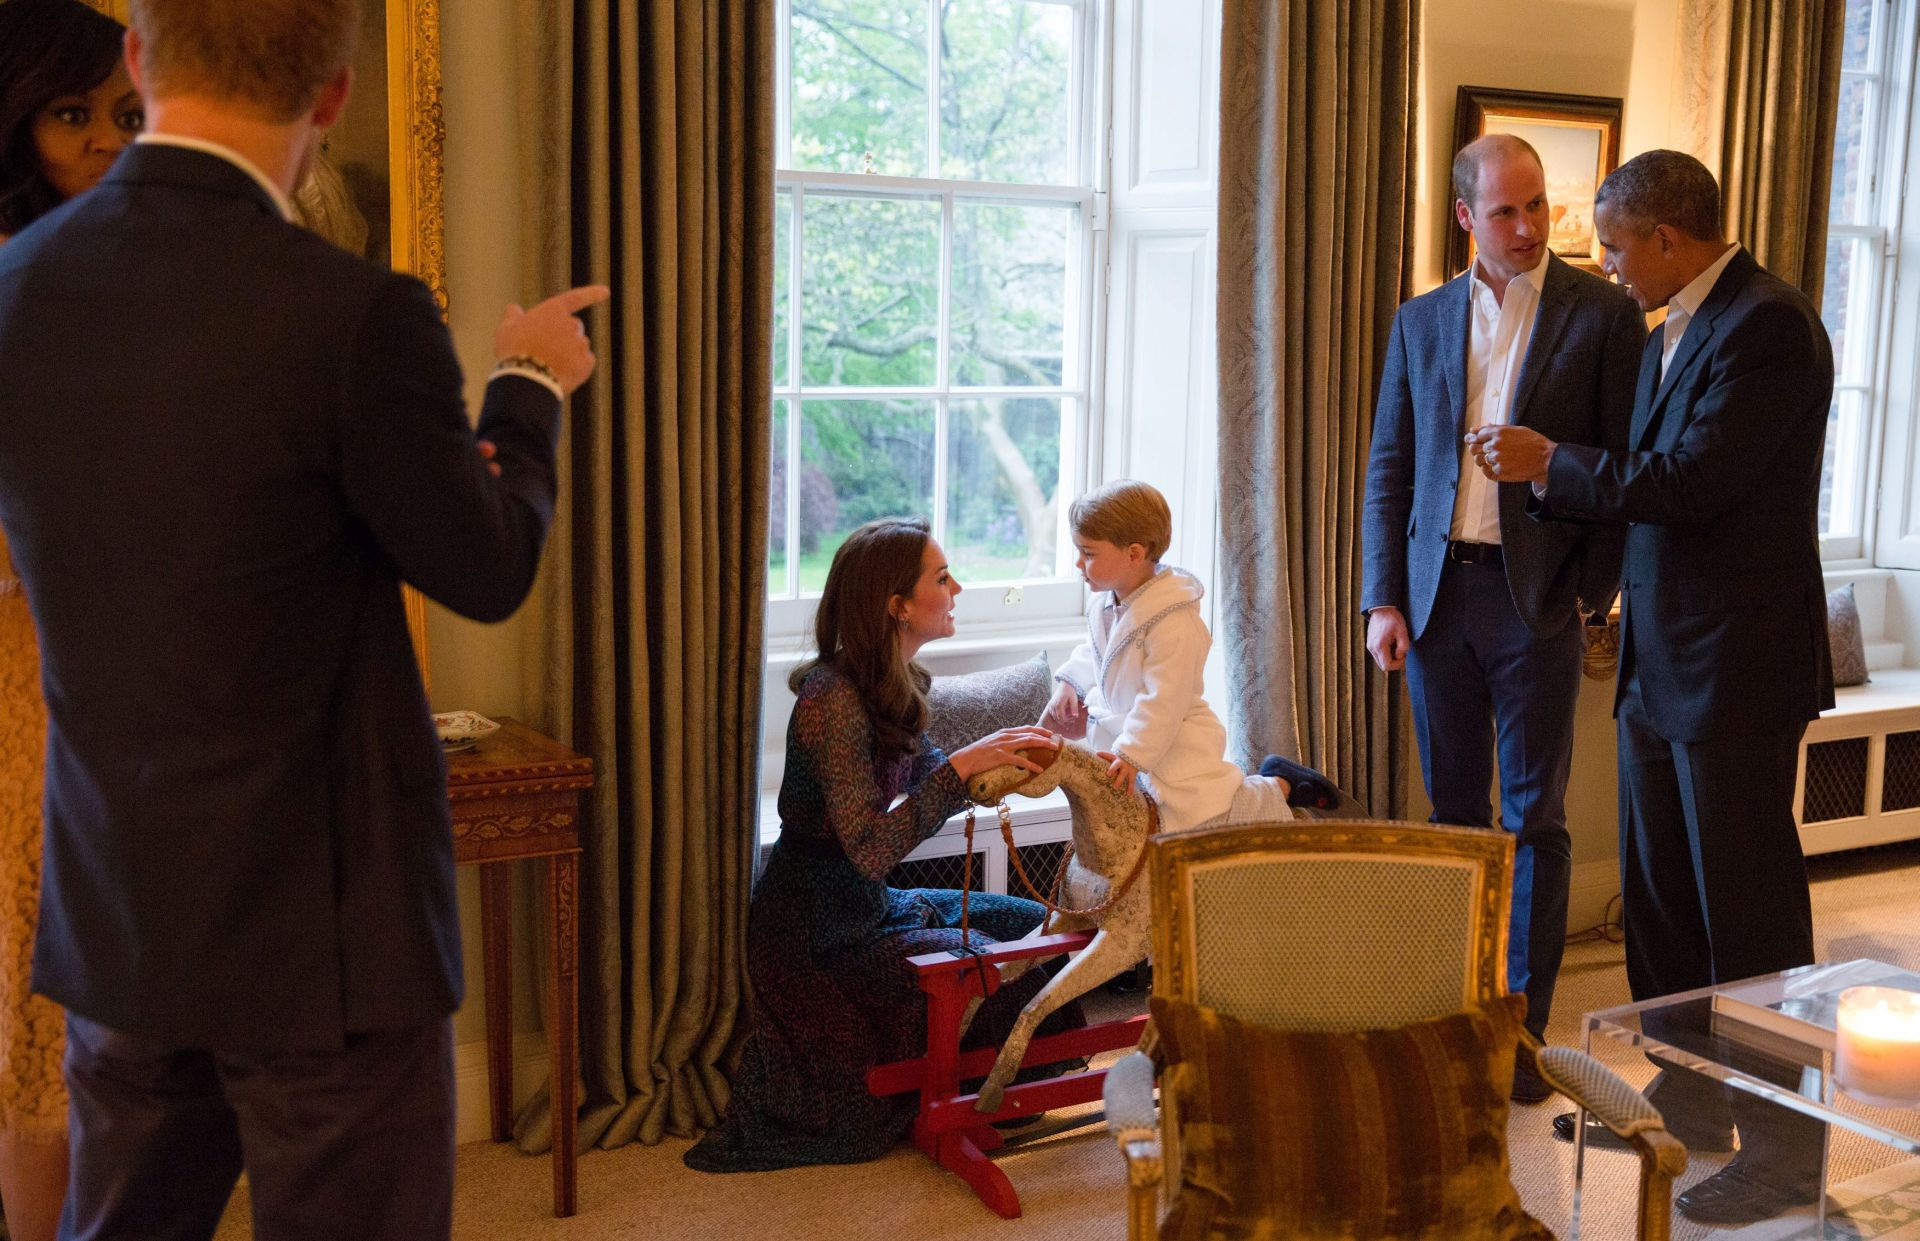 EPA/PETE SOUZA / PRESS ASSOCIATION / KENSINGTON PALACE